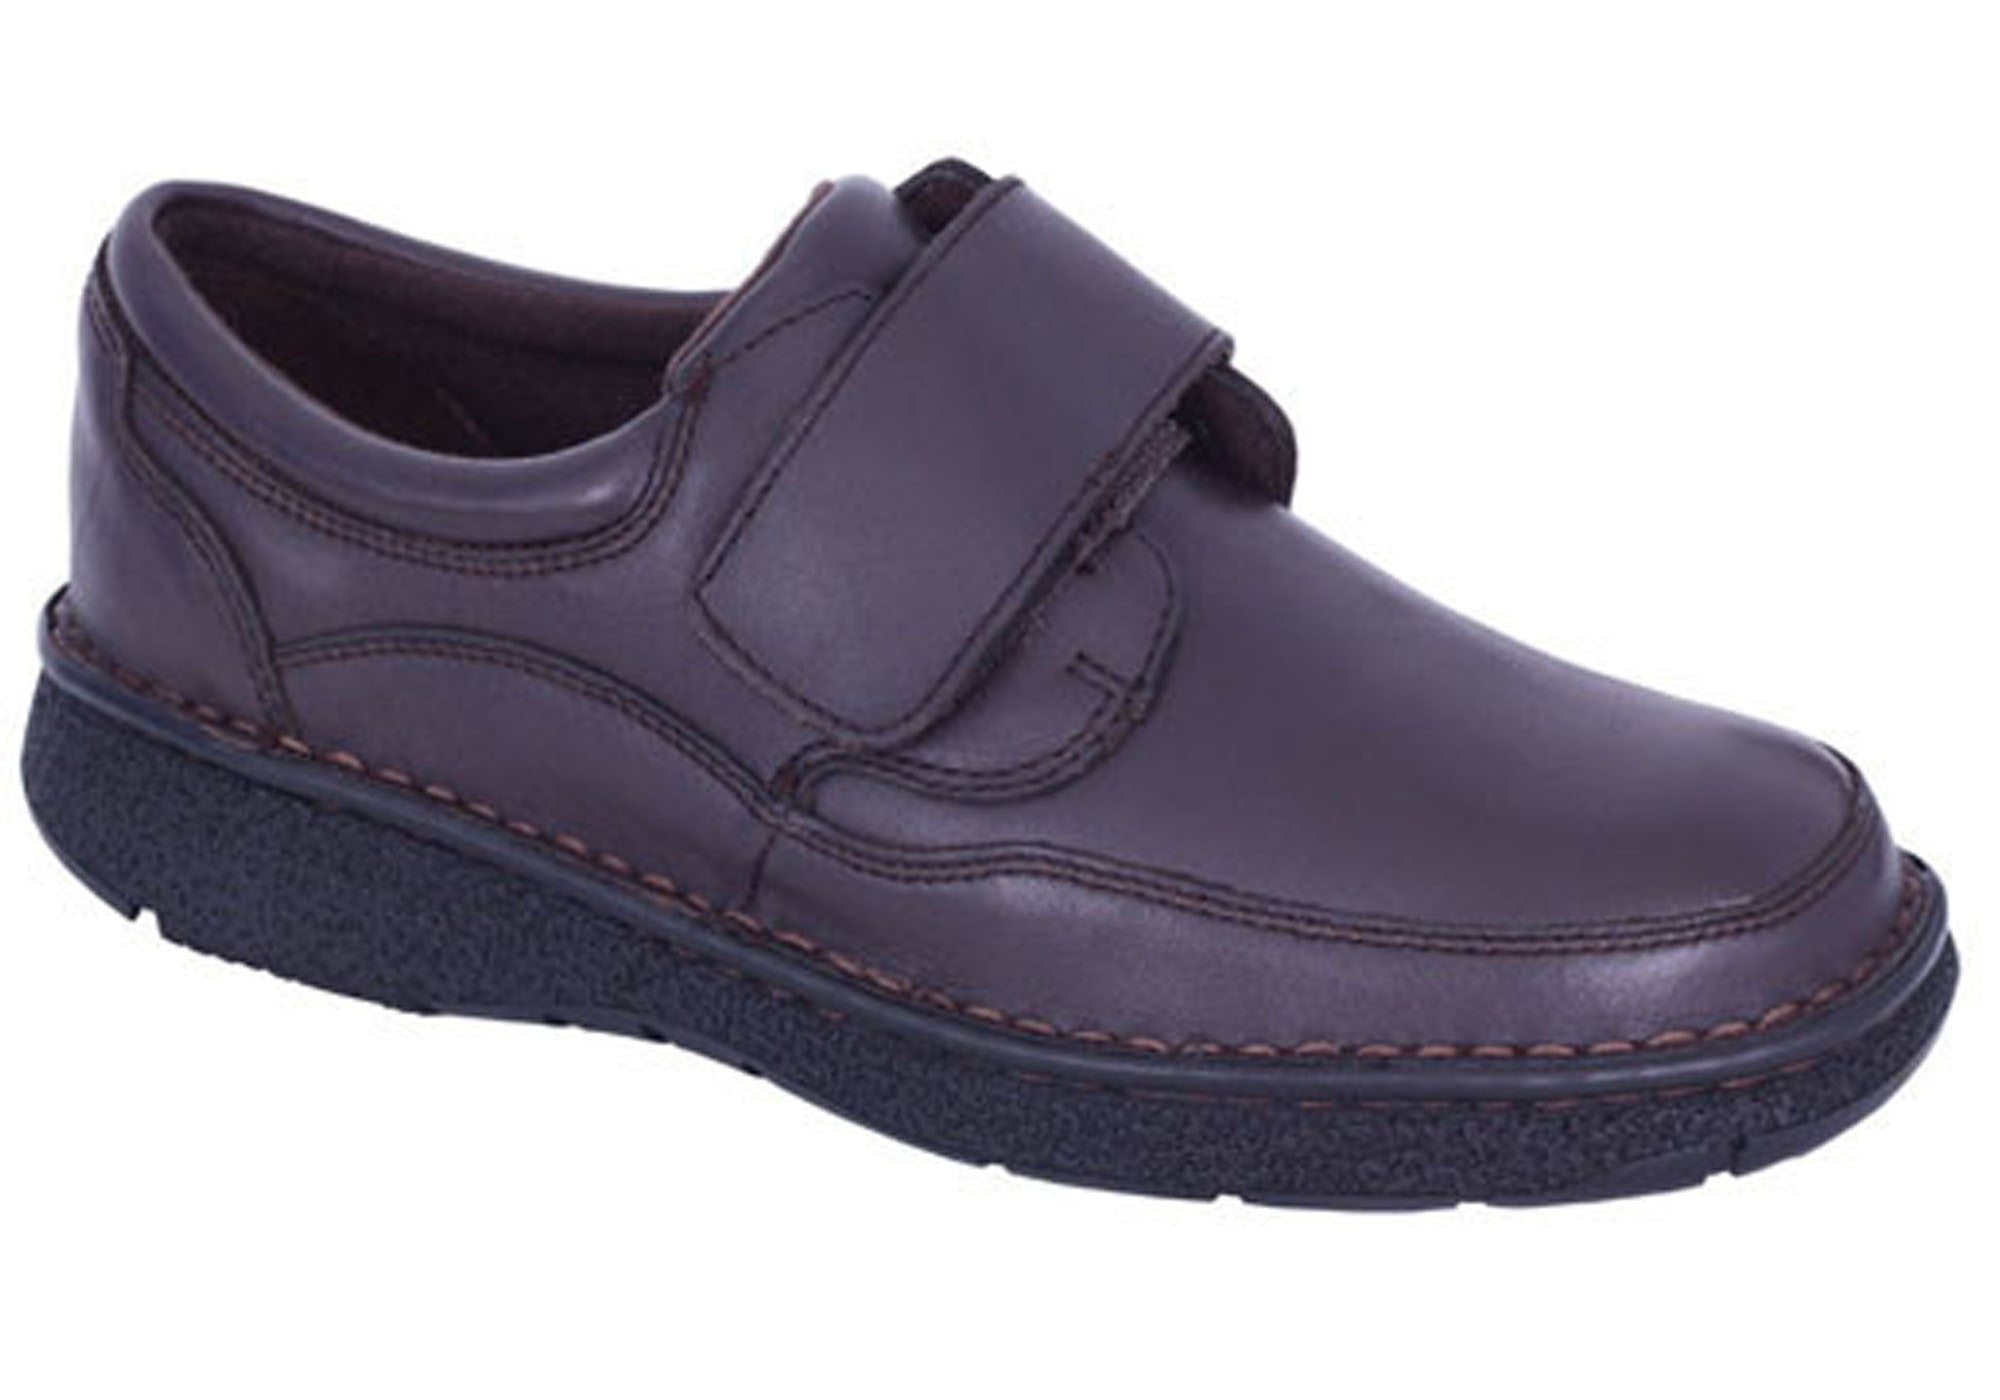 Slatters-Access-Mens-Leather-Wide-Fit-Comfort-Walking-Shoes